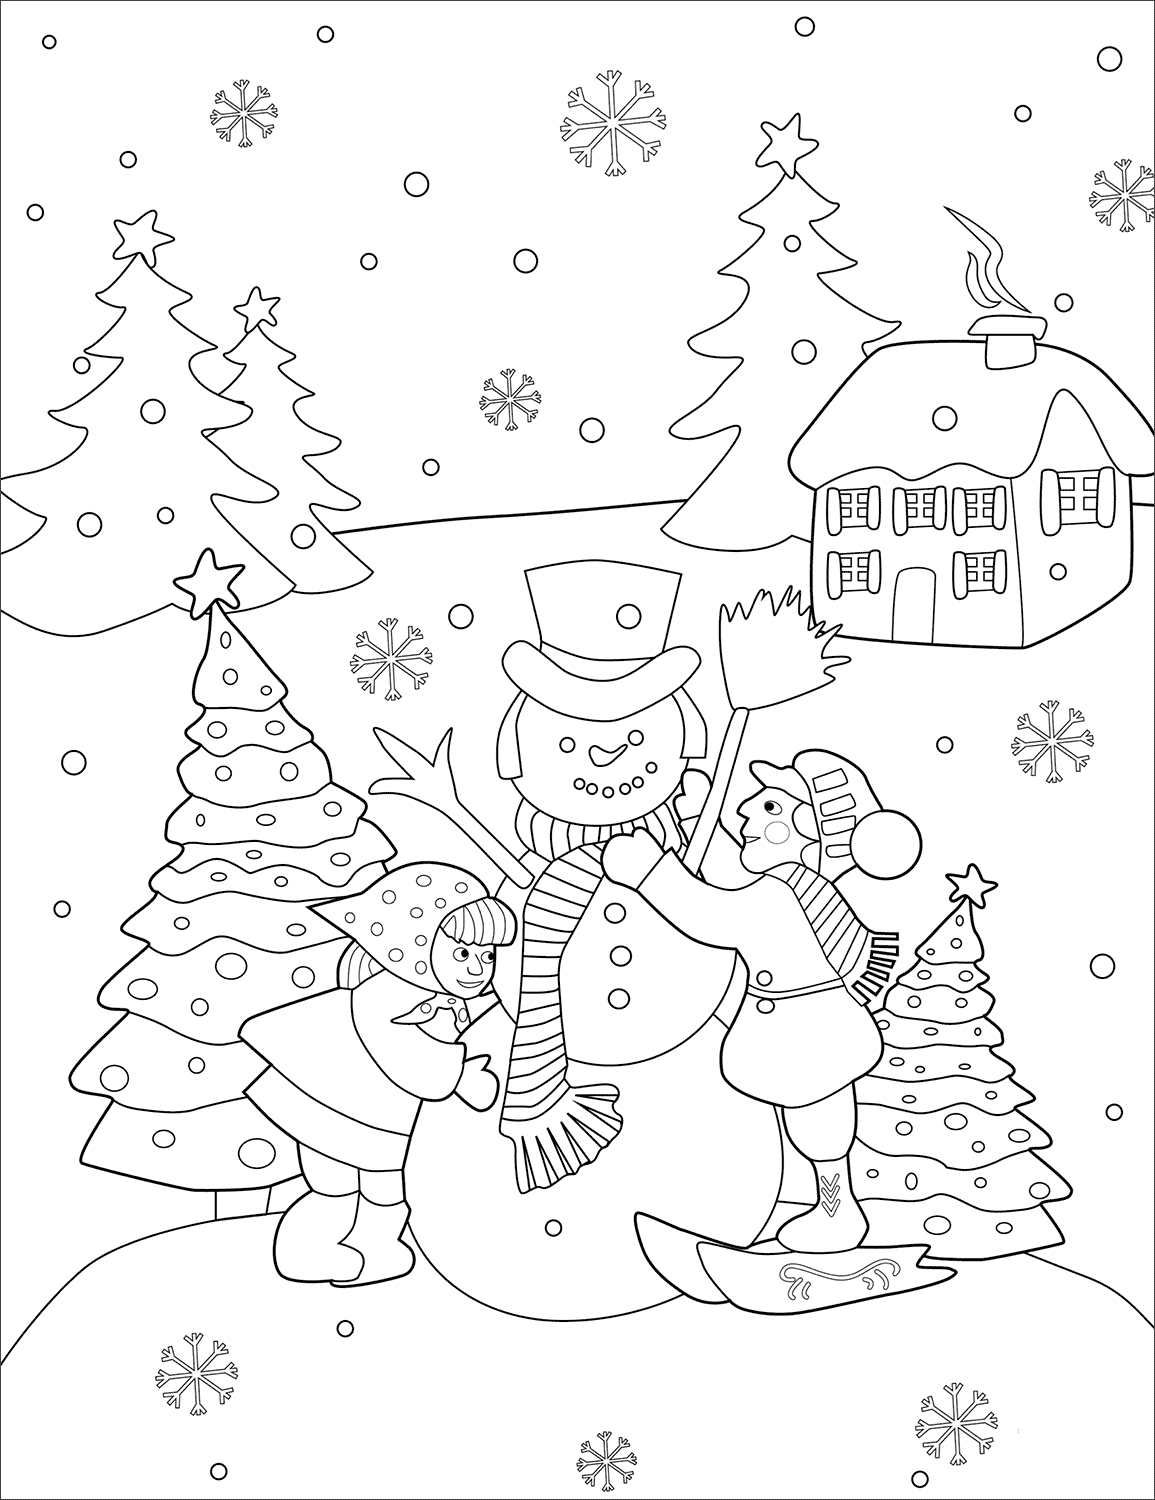 Kids Making Snowman Coloring Page